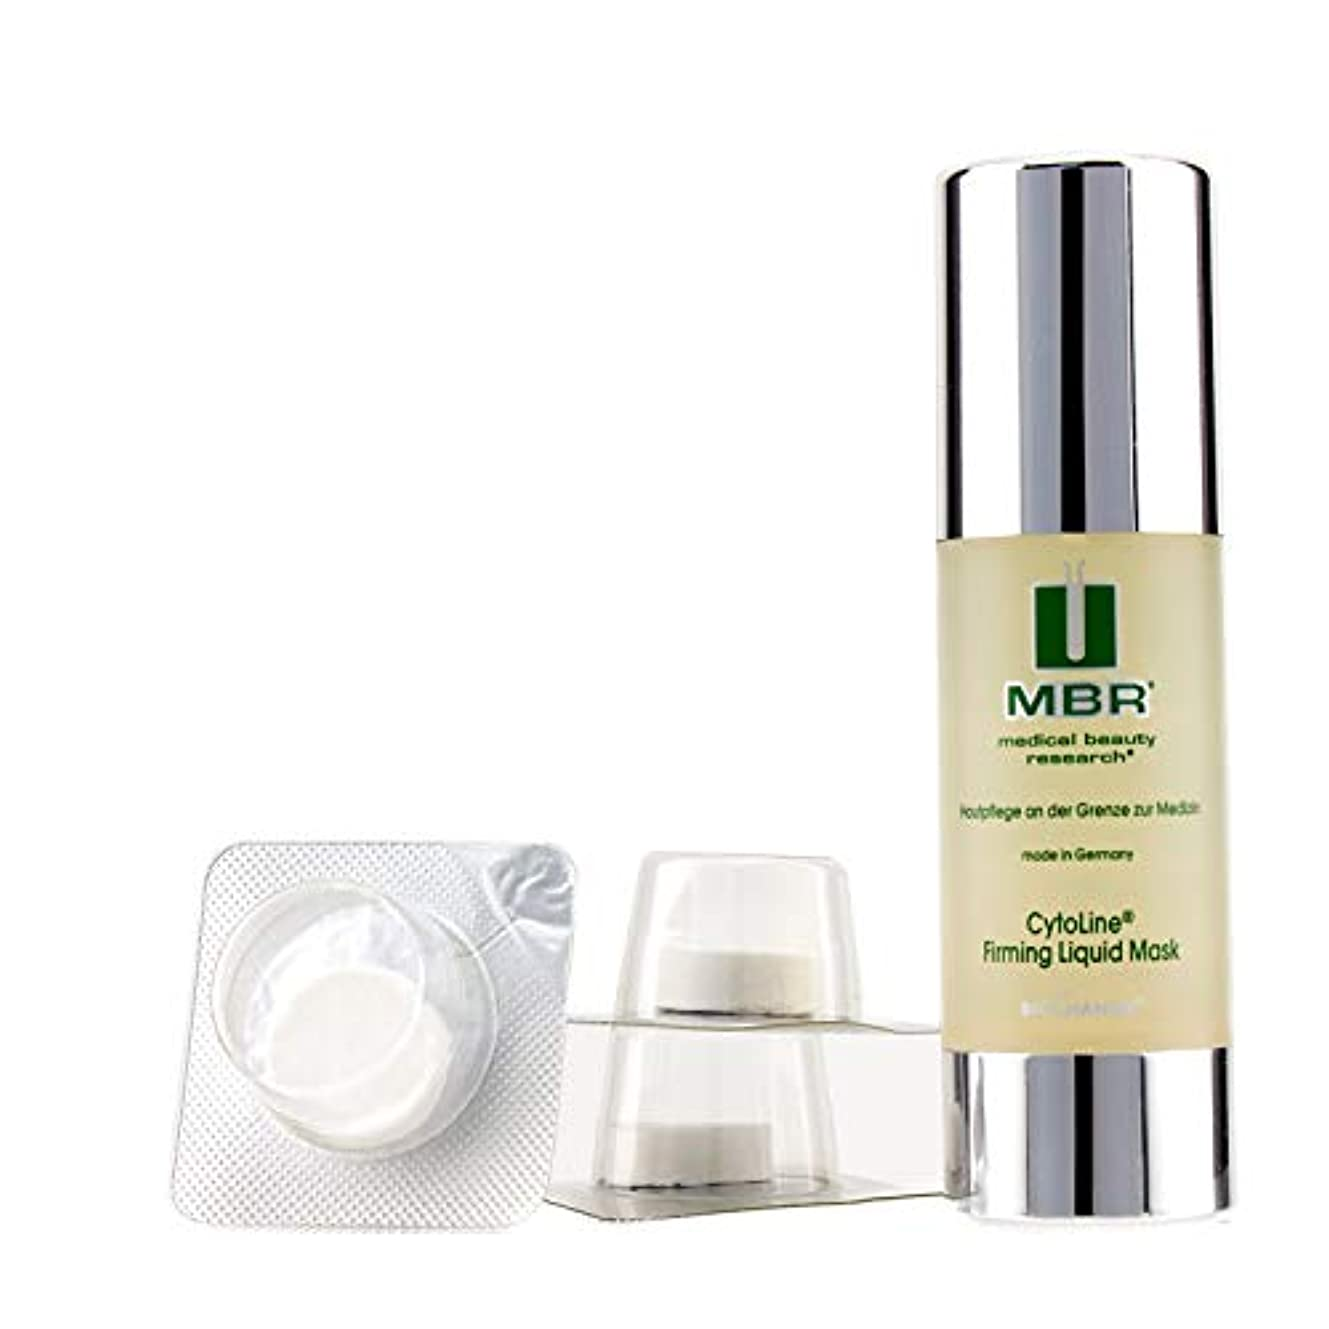 エミュレートする皮肉統合MBR Medical Beauty Research BioChange CytoLine Firming Liquid Mask 6applications並行輸入品